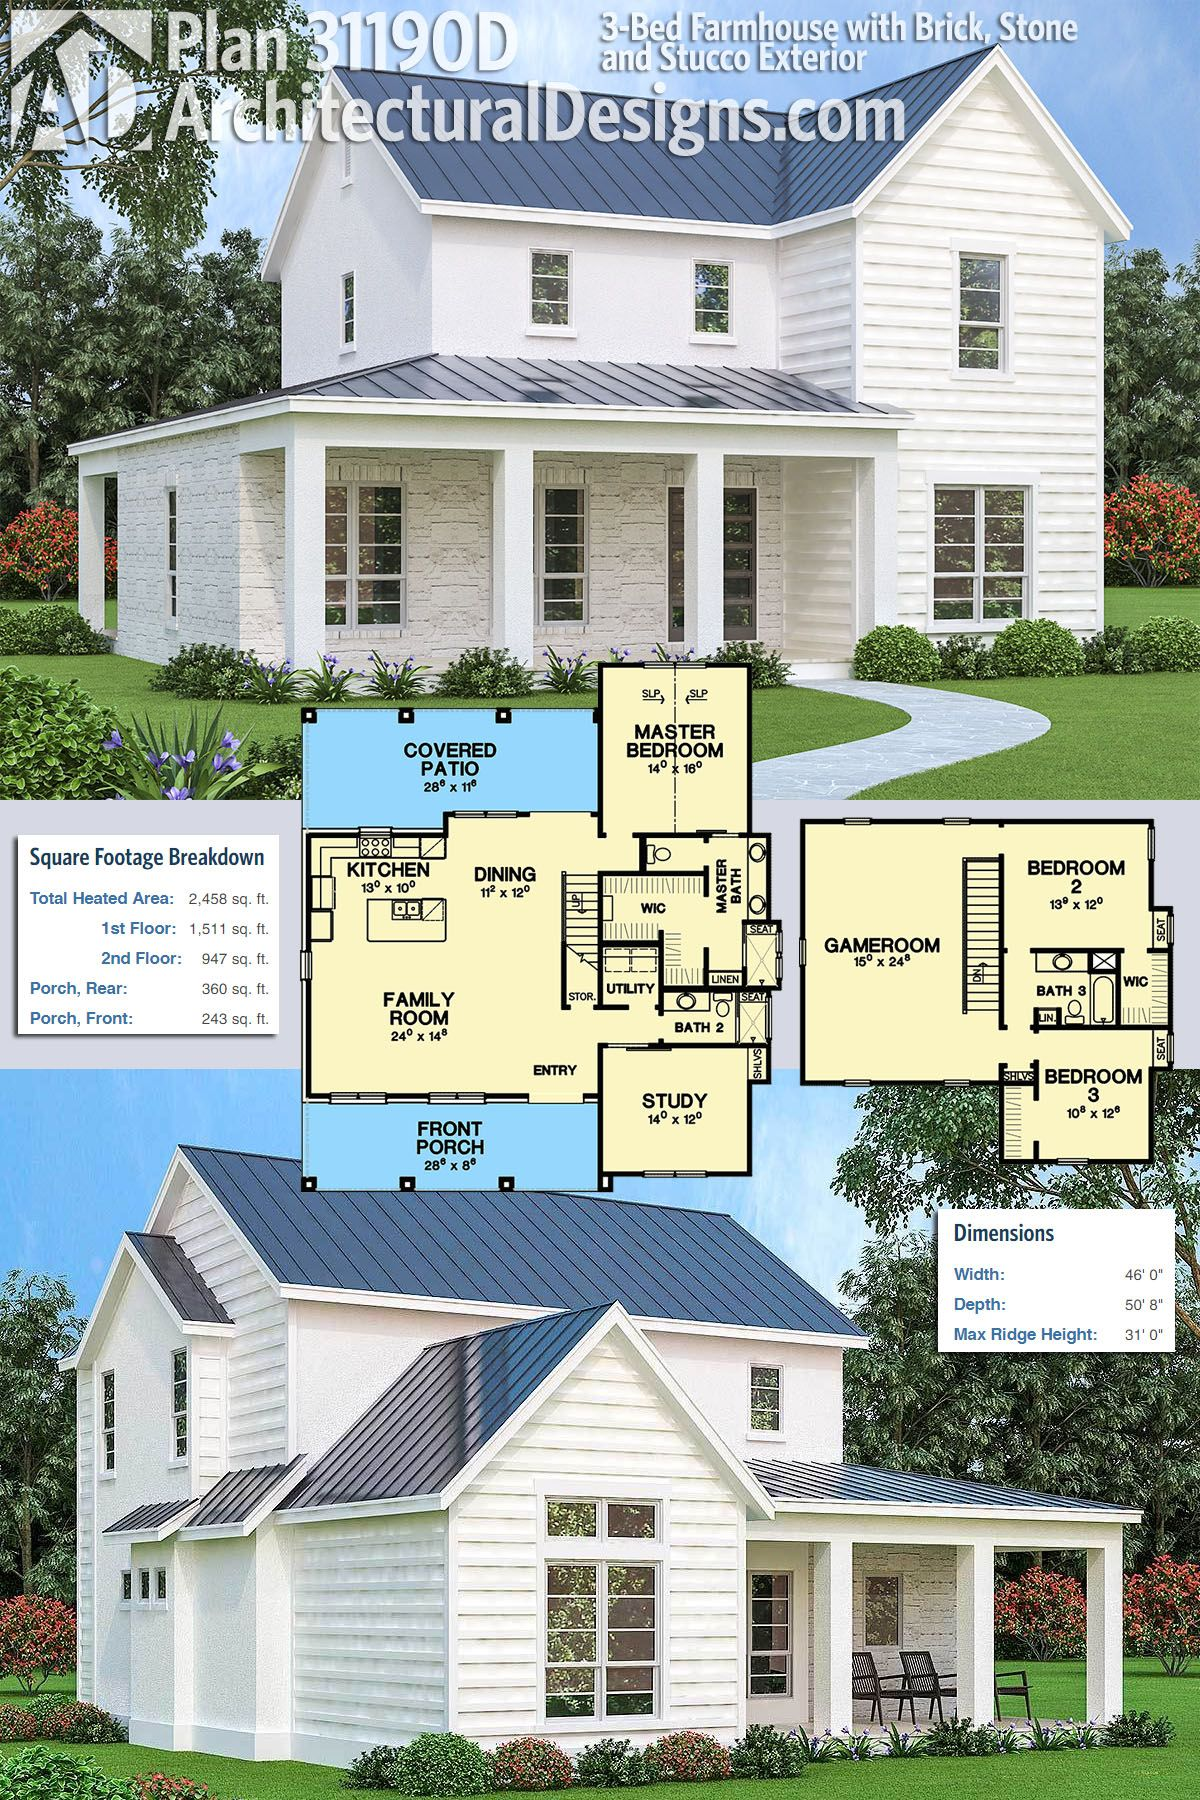 Plan 31190d 3 Bed Farmhouse With Brick Stone And Stucco Exterior Farmhouse Plans Dream House Plans Farmhouse Floor Plans